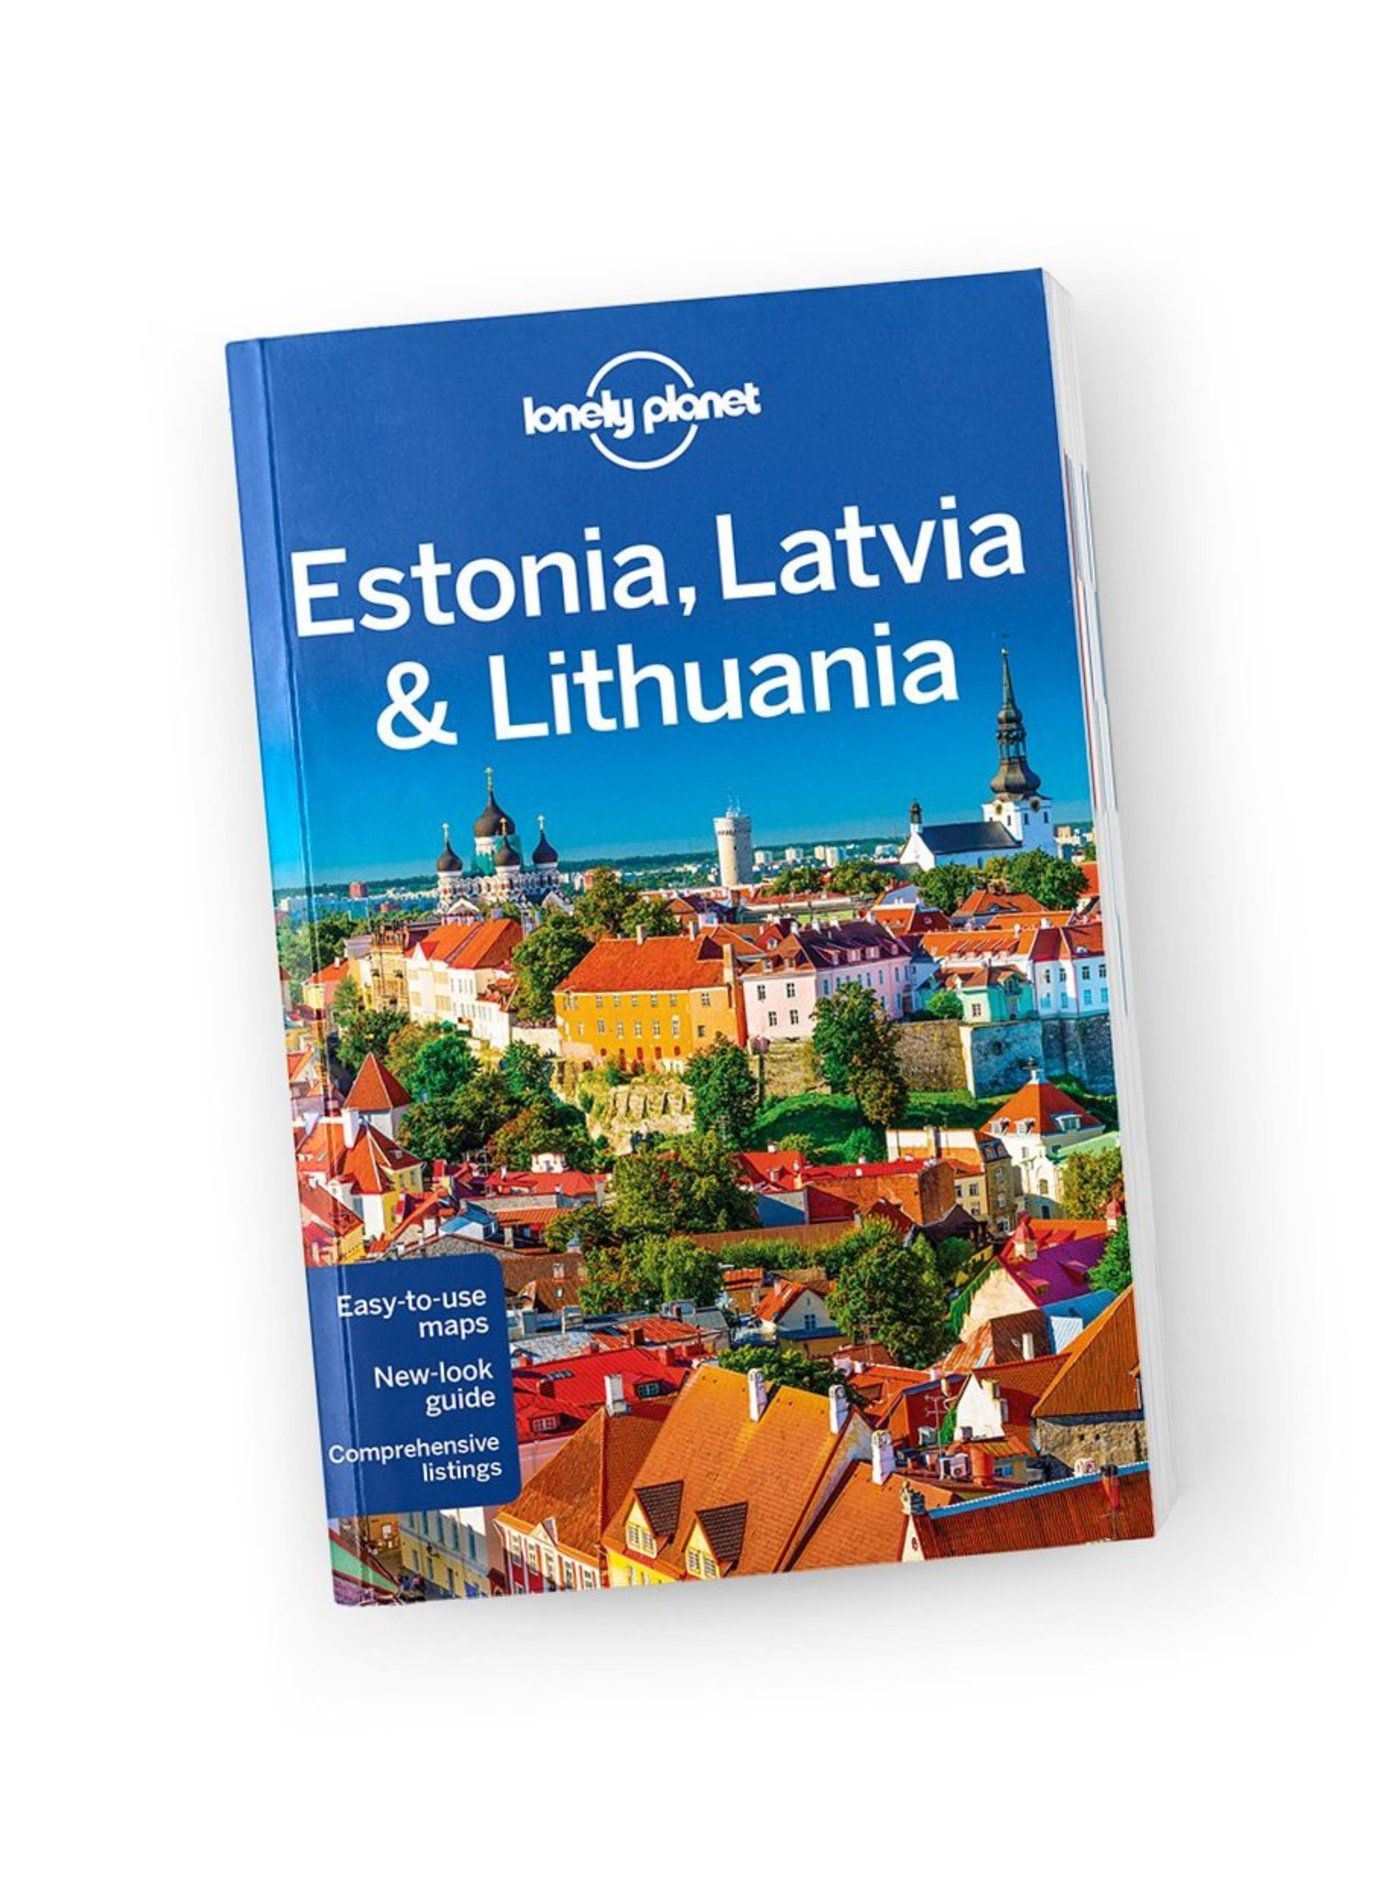 Lonely Planet Baltic States Guidebook